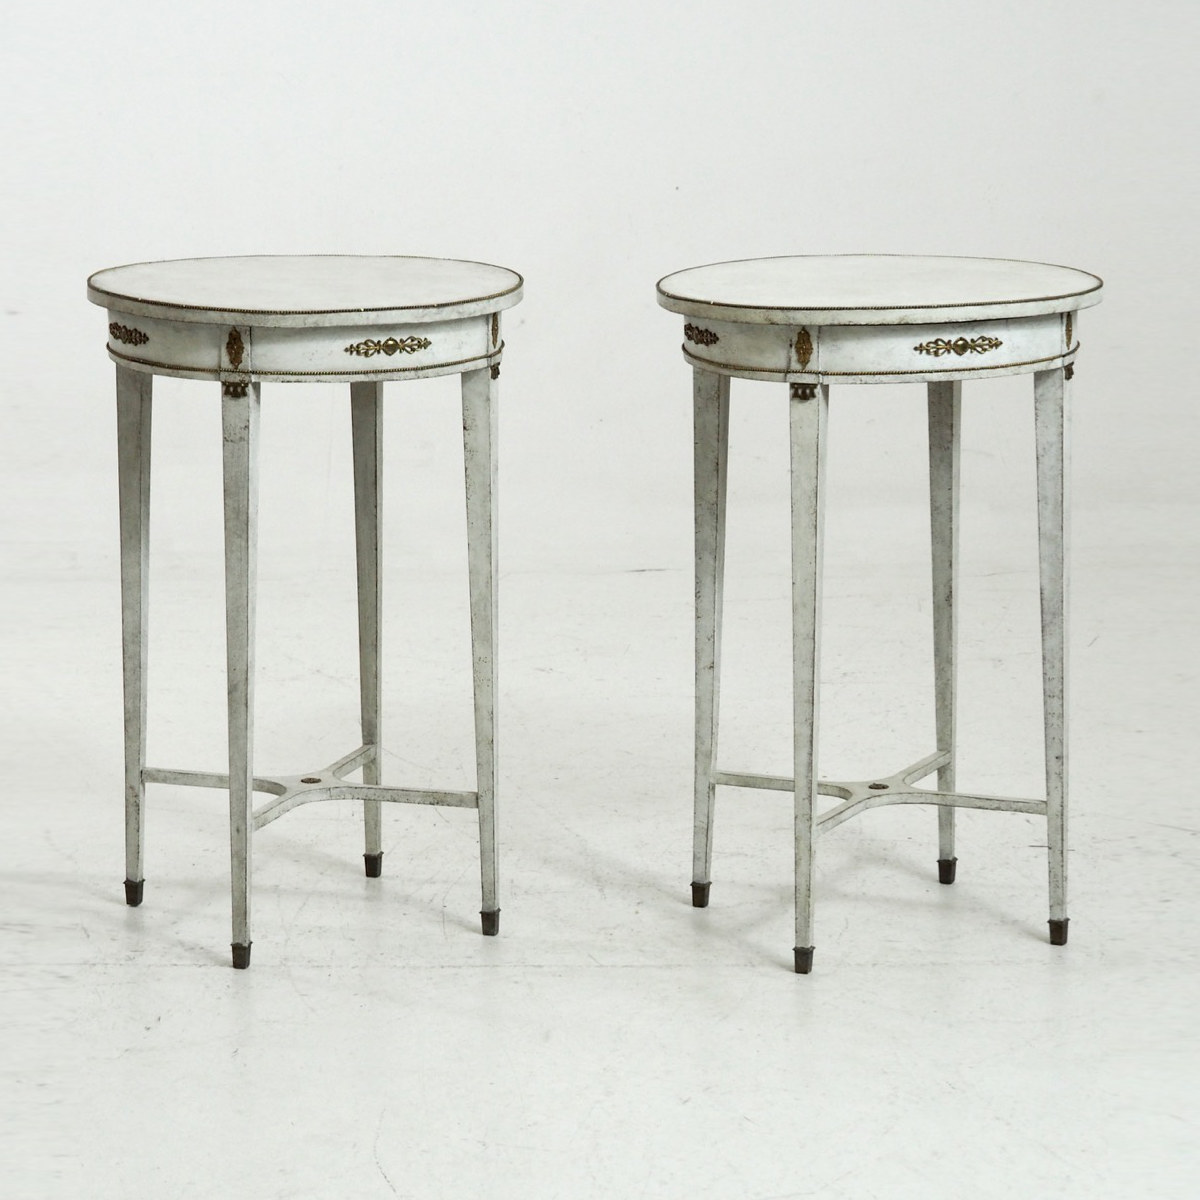 Gustavian style side tables, 19th C. - € 1.700